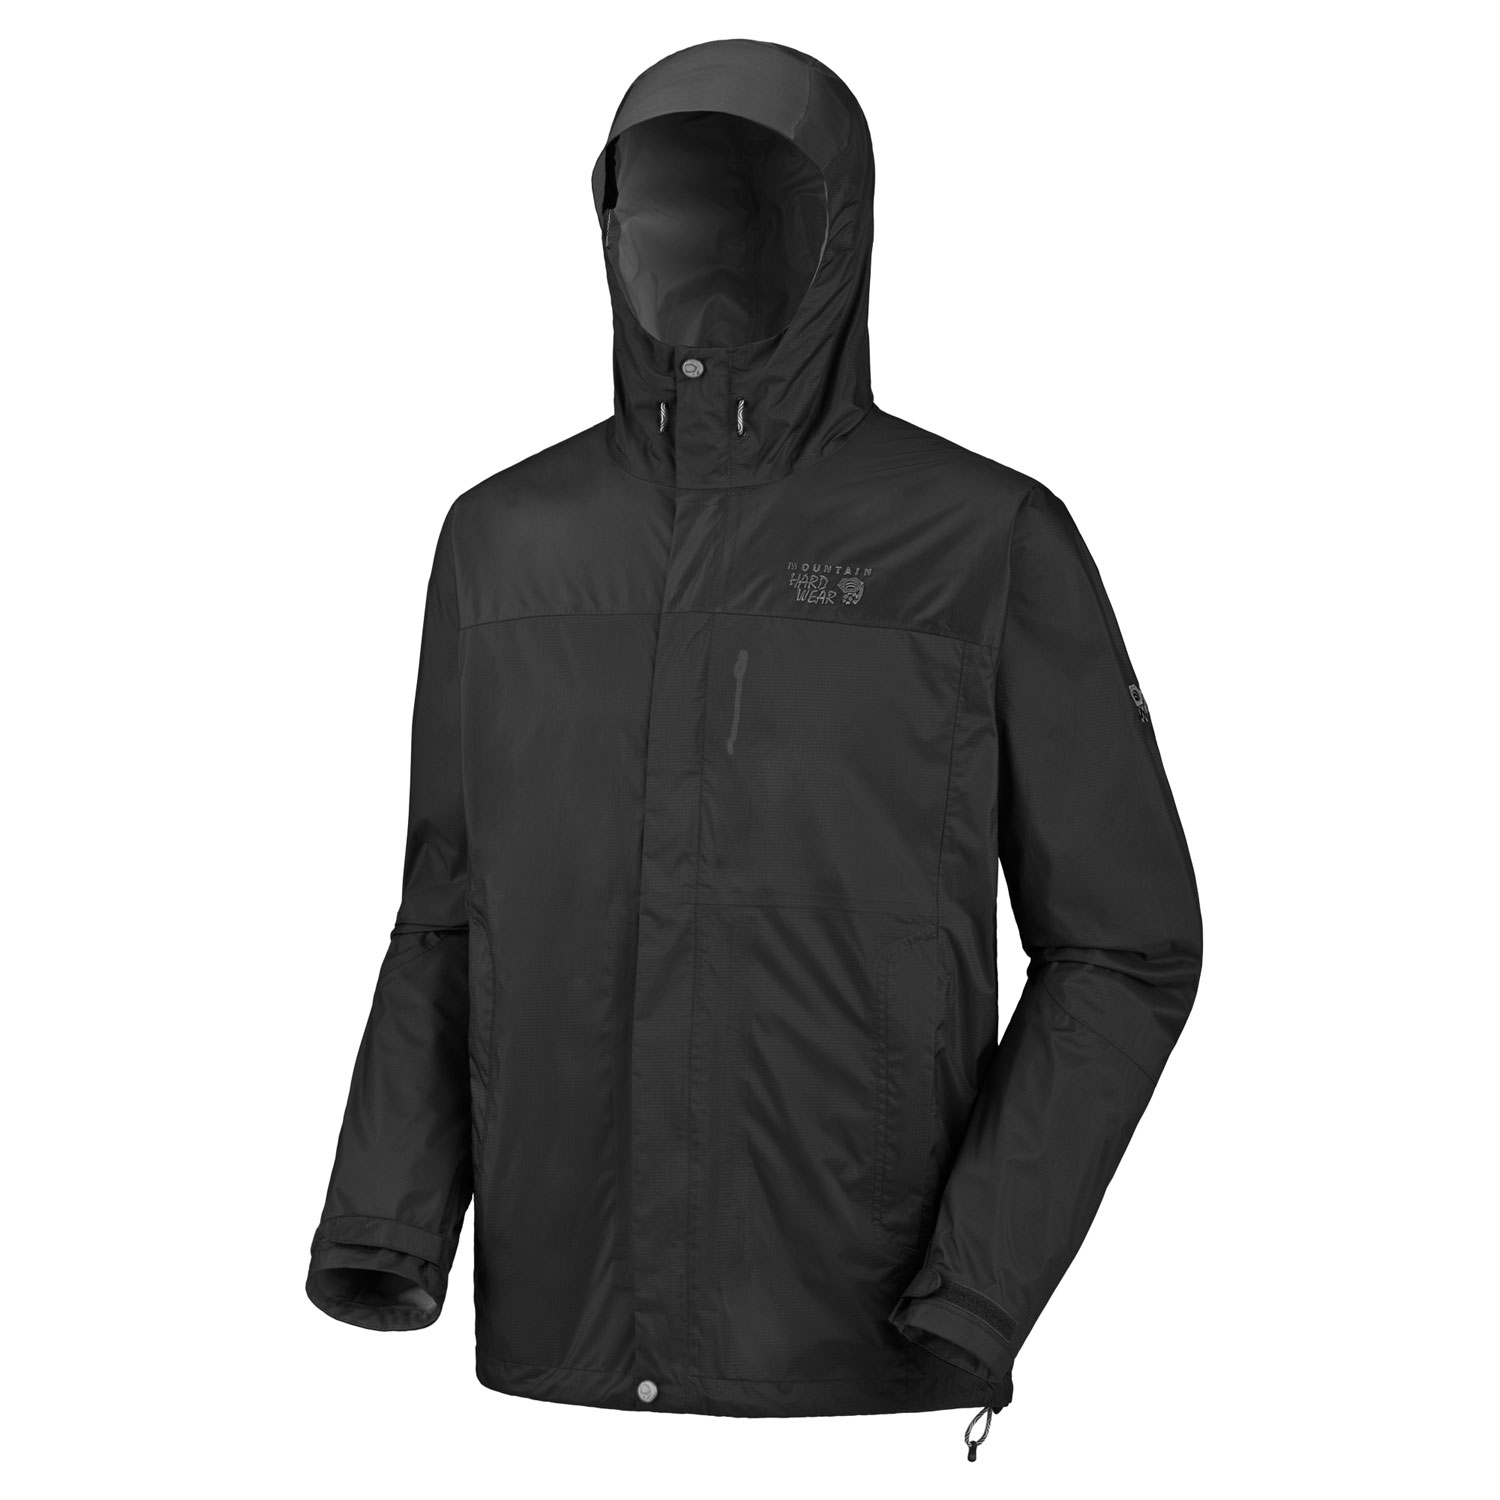 "Key Features of the Mountain Hardwear Epic Rain Jacket: Avg. weight: 14oz; 395g Center back length: 29"" Fabric: body: Epic 2.5L (100% nylon) DryQ Elite: 100% waterproof, most breathable, air-permeable, no-wait comfort Attached hood with extra-beefy brim for added protection against the elements Pit zips Micro-Chamois - lined chin guard eliminates zipper chafe Dual hem drawcords for quick fit adjustments Adjustable Velcro cuffs for quick fit adjustments - $69.95"